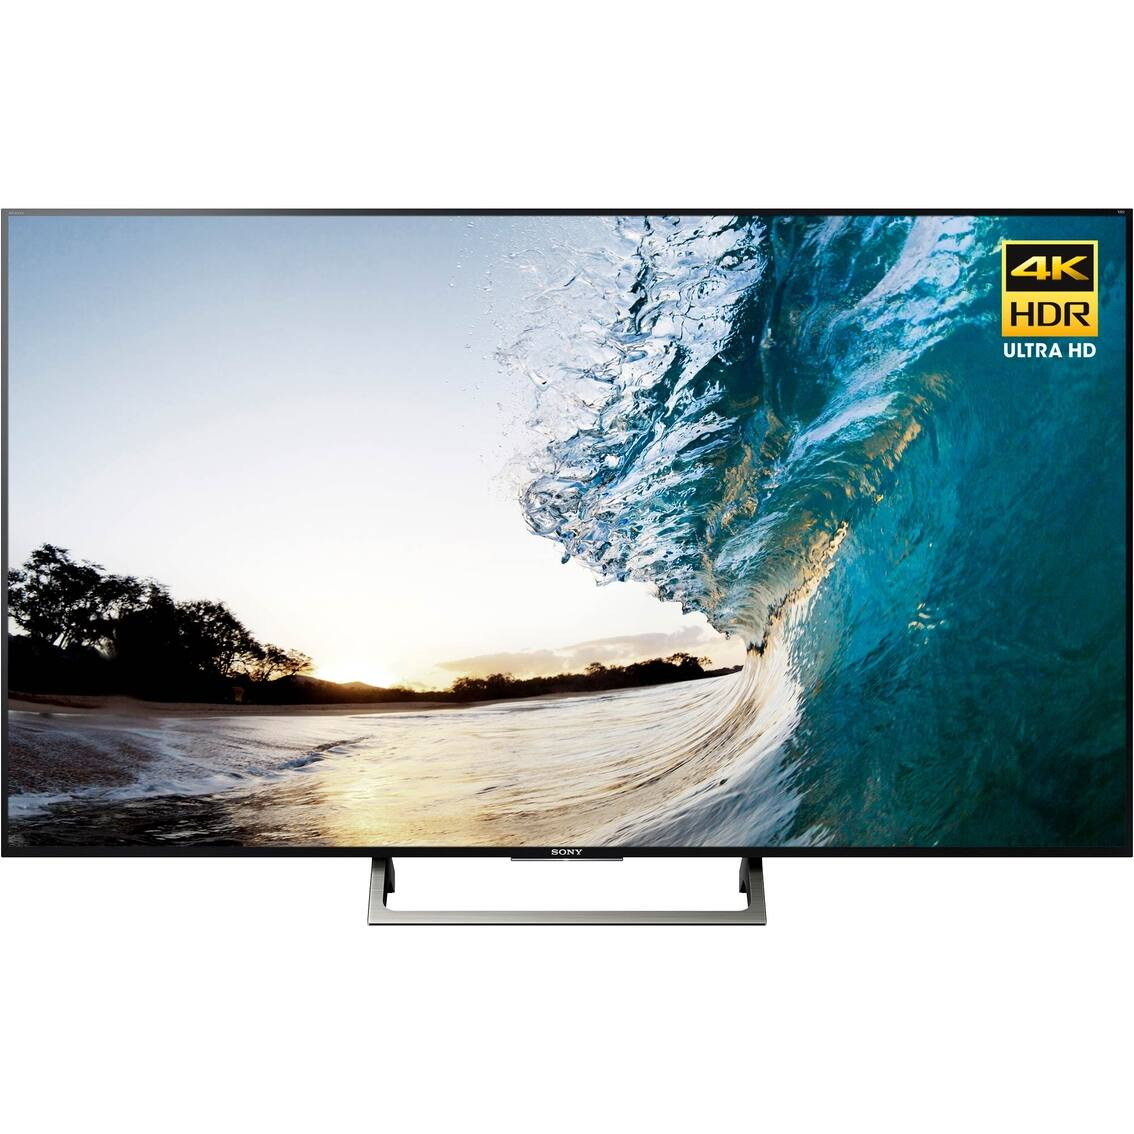 SONY 75 in. 4K HDR LED 120Hz Smart TV XBR-75X850E  $1699 no tax/free shipping  AAFES (military/vets only)